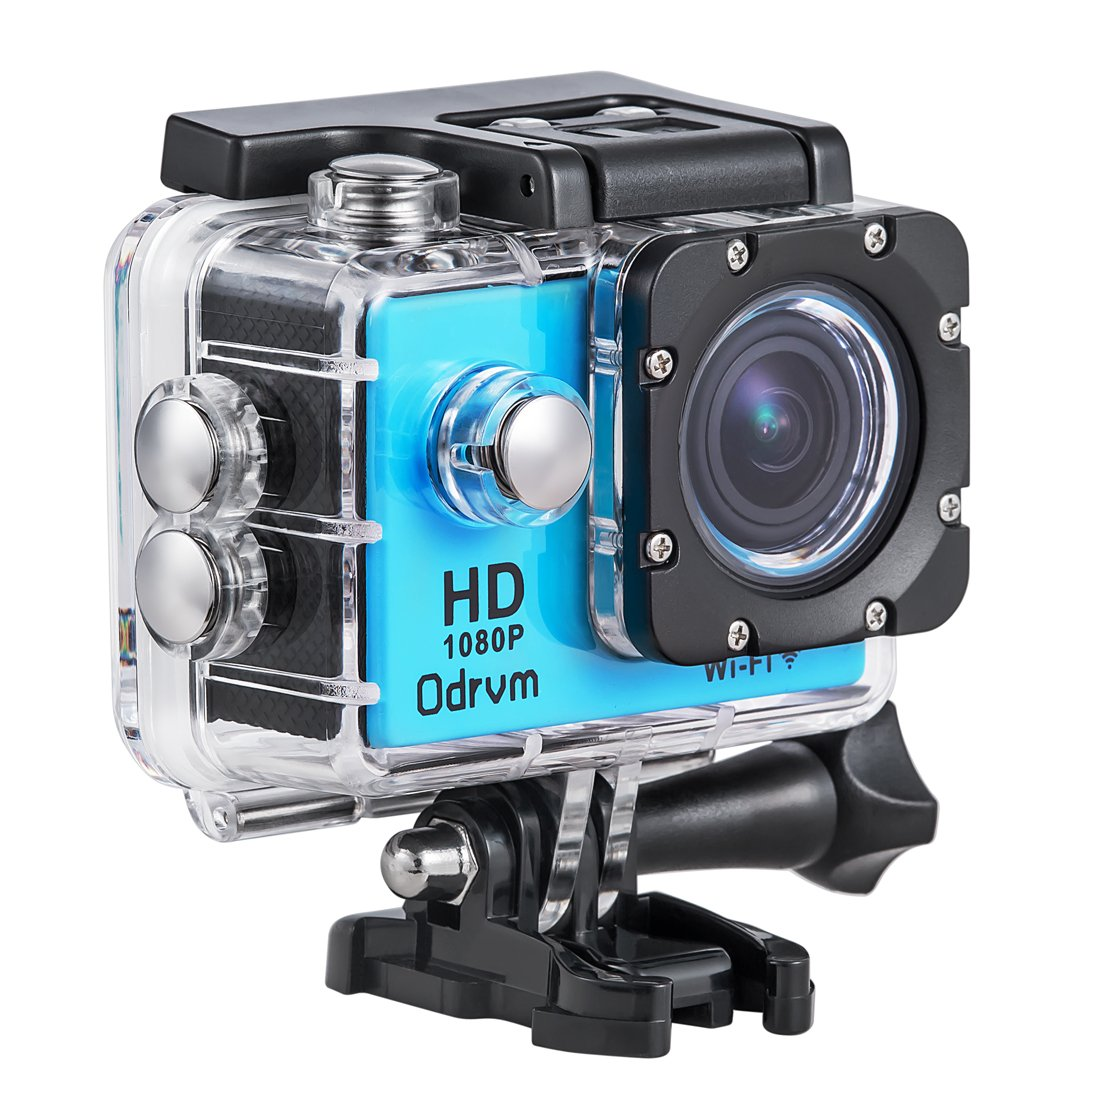 WIFI Underwater Camera 2.0-Inch LCD HD 1080P Sports Action Cameras Waterproof Camera Diving 30M With 2PCS Battery, Motorcycle Helmet Camera for Biking, Riding, Racing, Skiing, Motocross And Water Sports